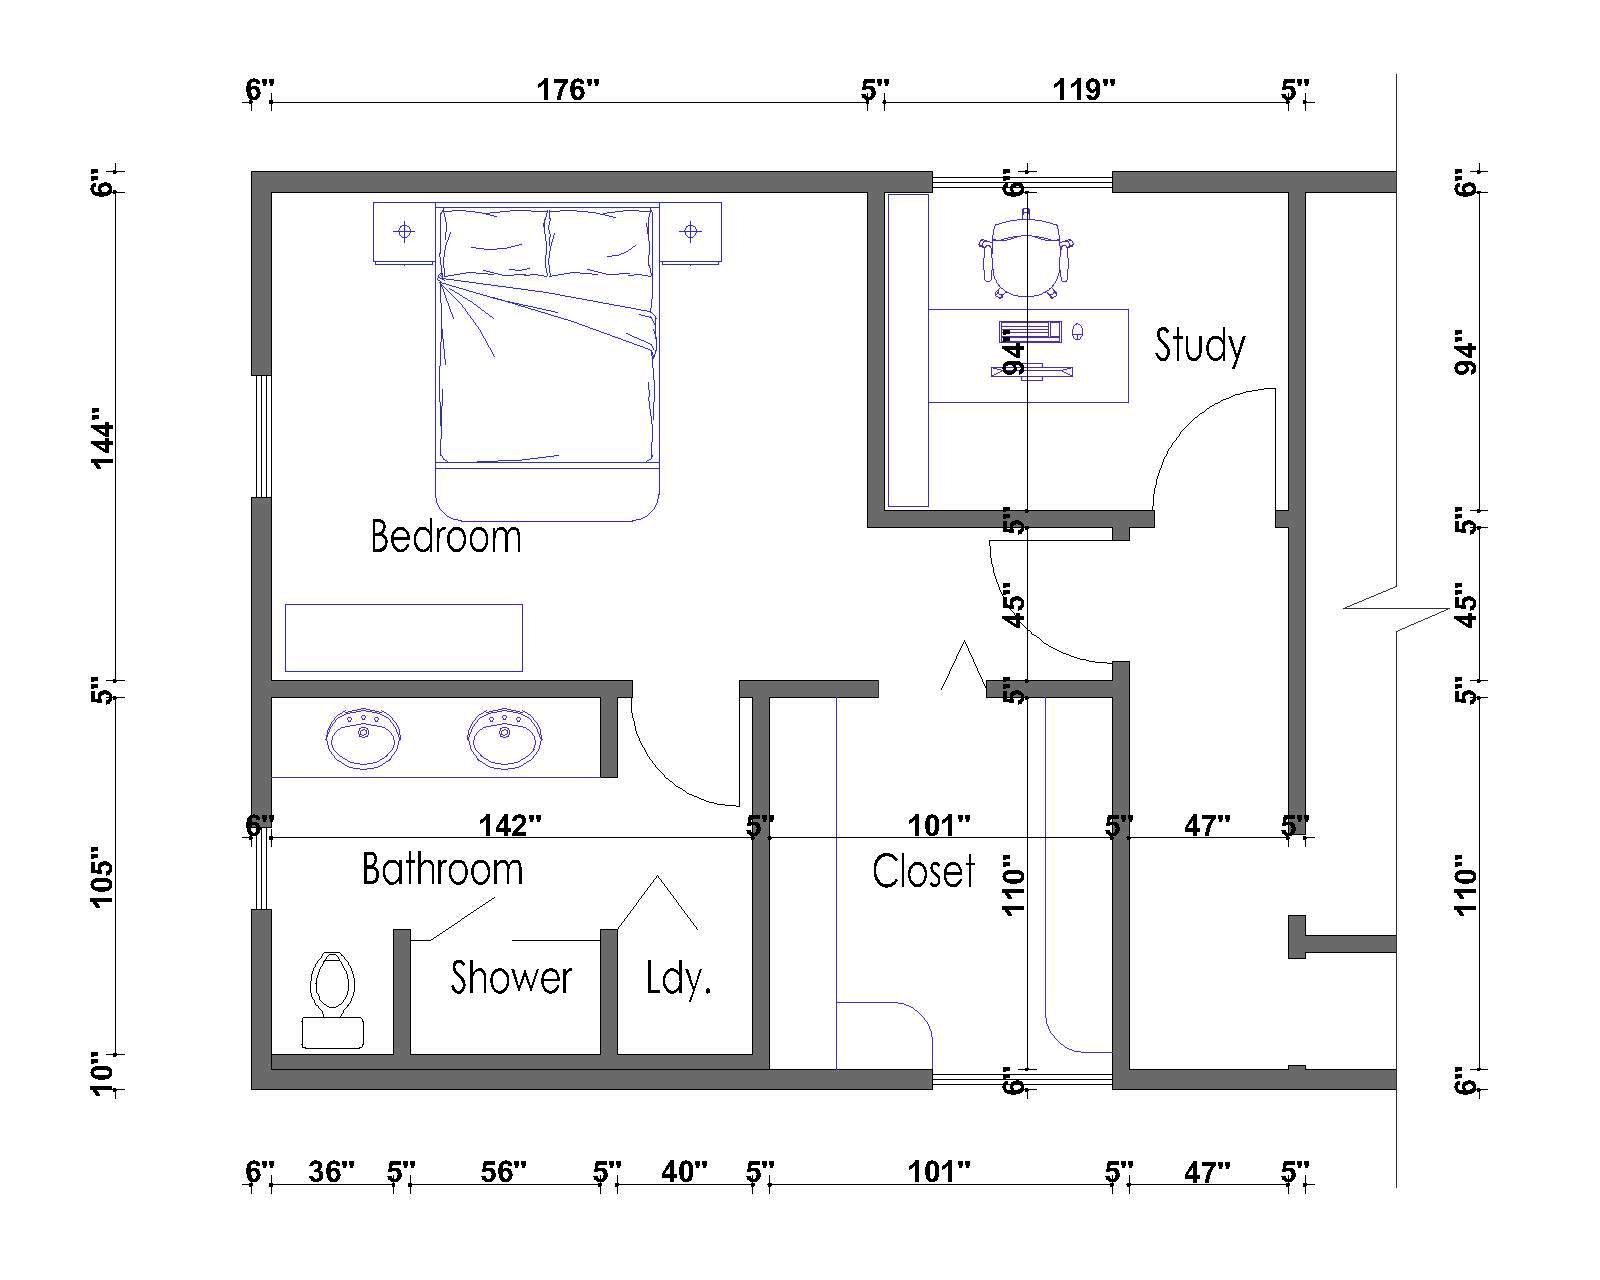 related master bedroom addition floor plans luxury master bedroom